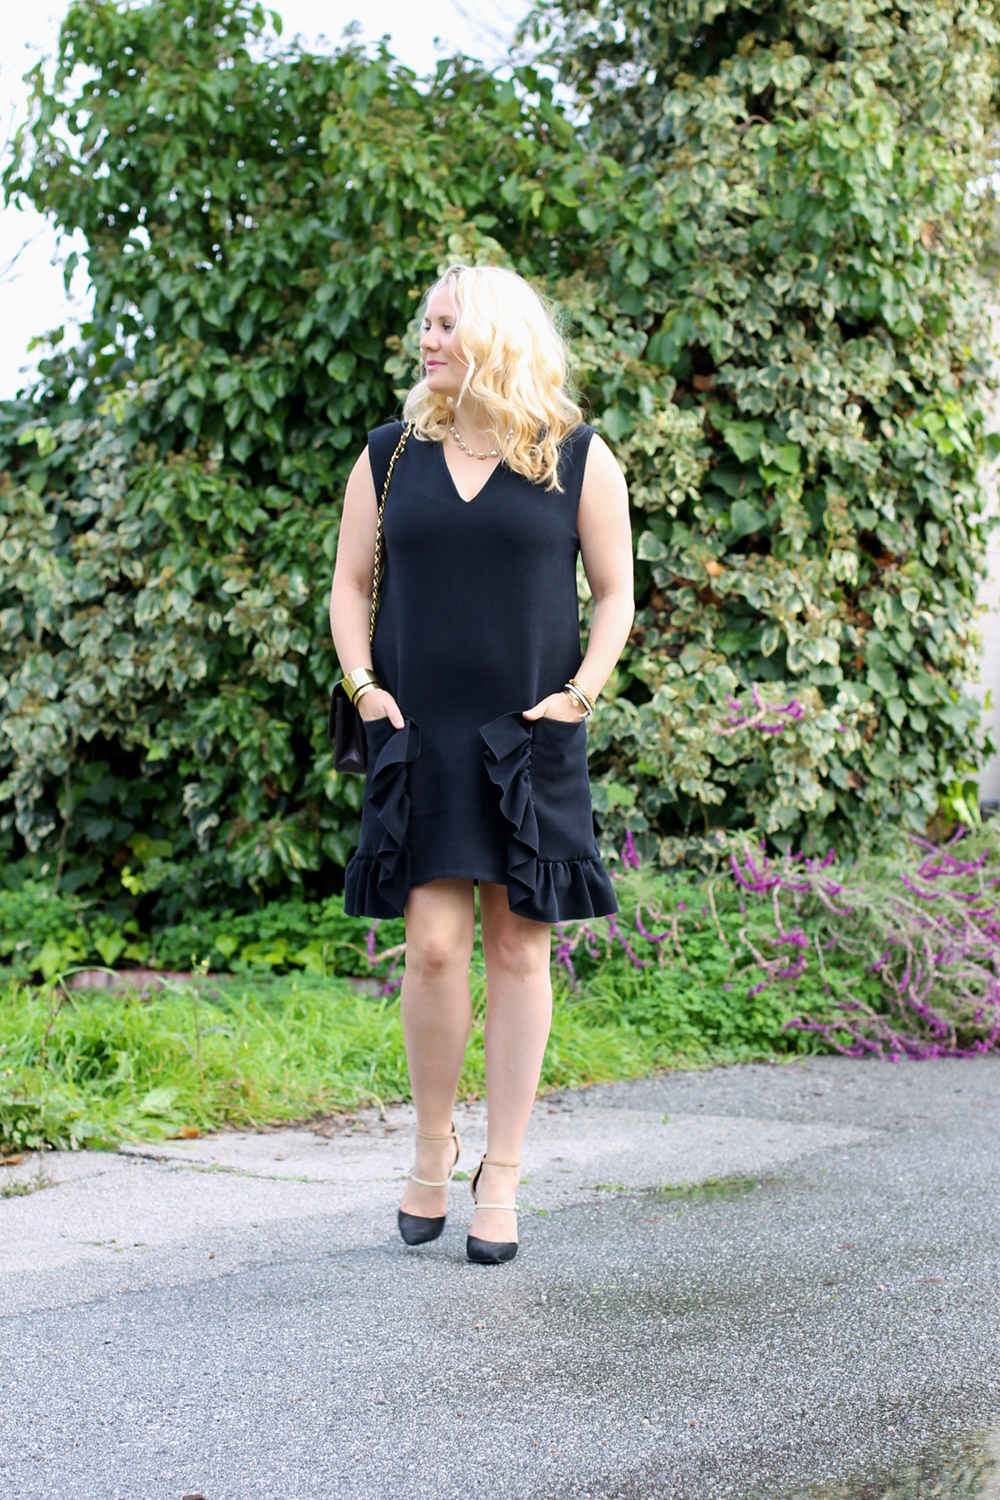 lbd-little-black-dress-ruffle-pockets-marni-rent-the-runway-outfit-inspiration-holiday-style-guide-have-need-want-12